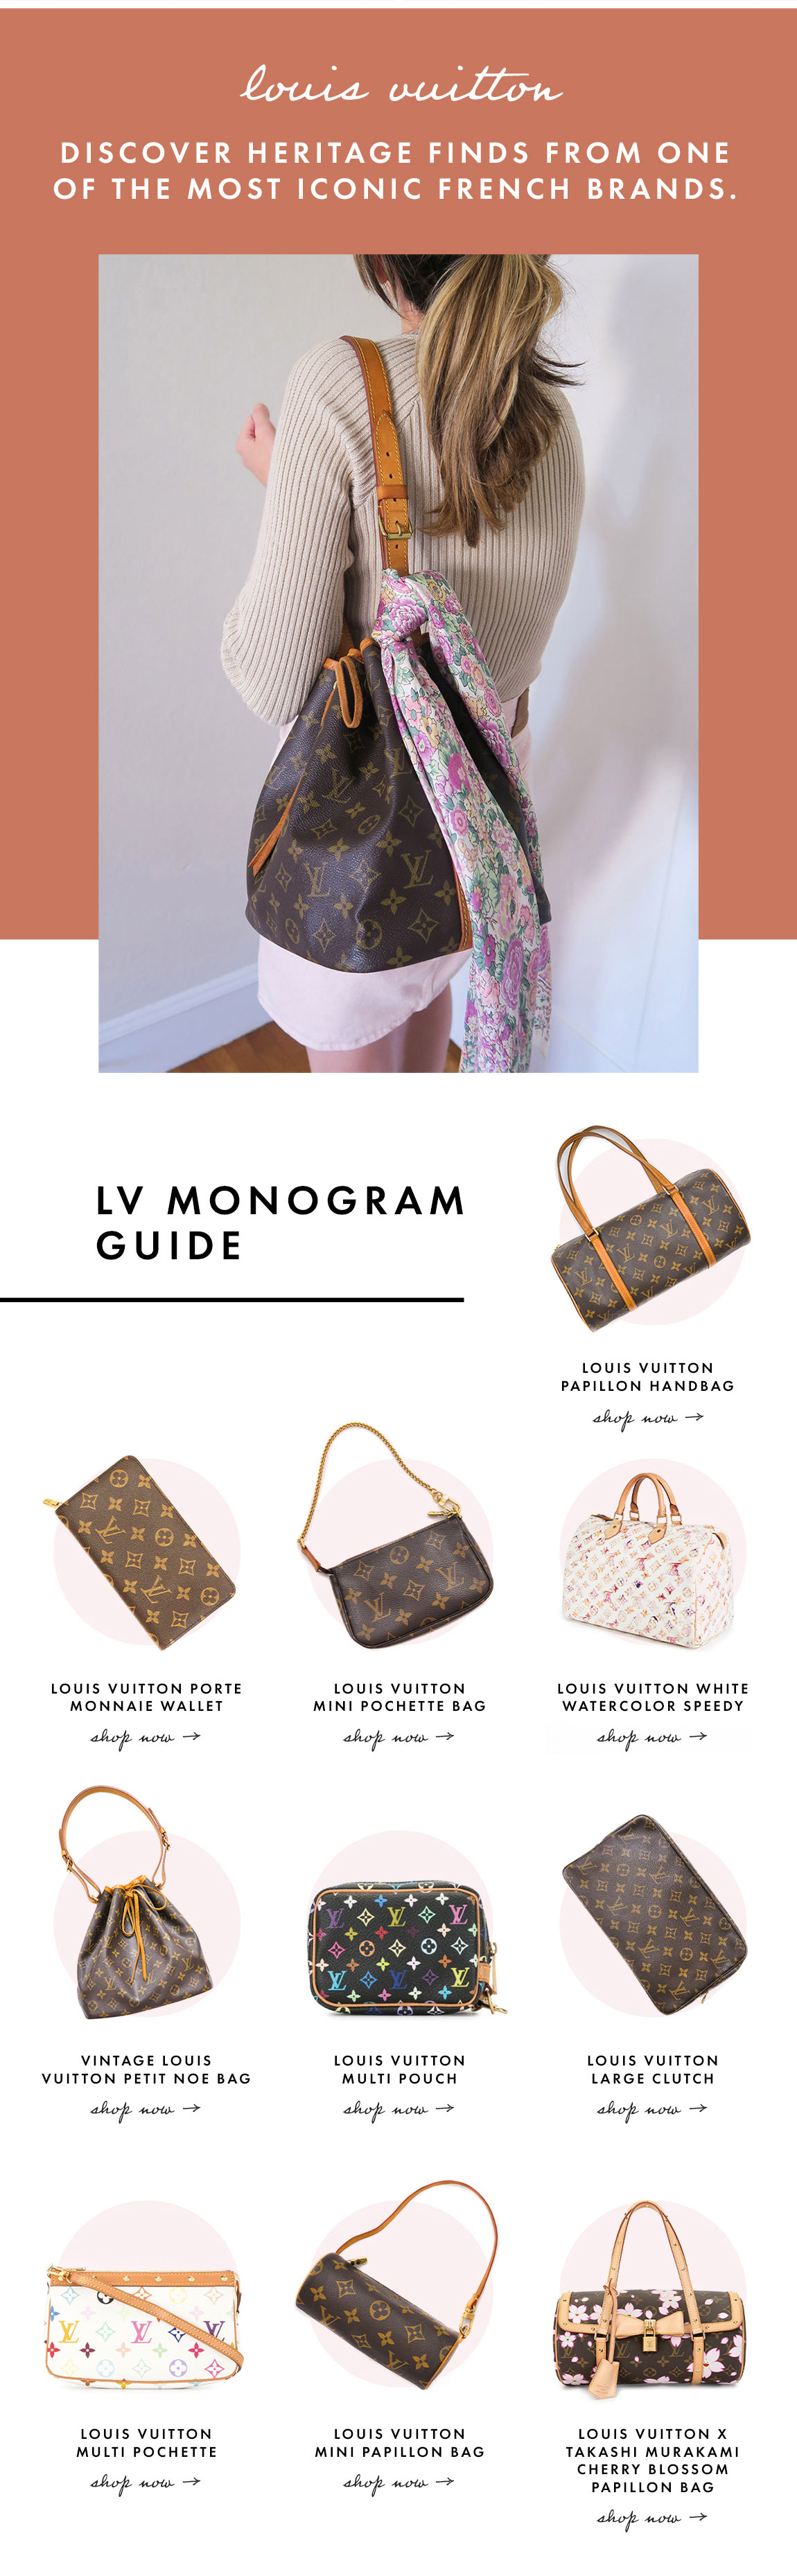 Louis Vuitton from Sweet & Spark